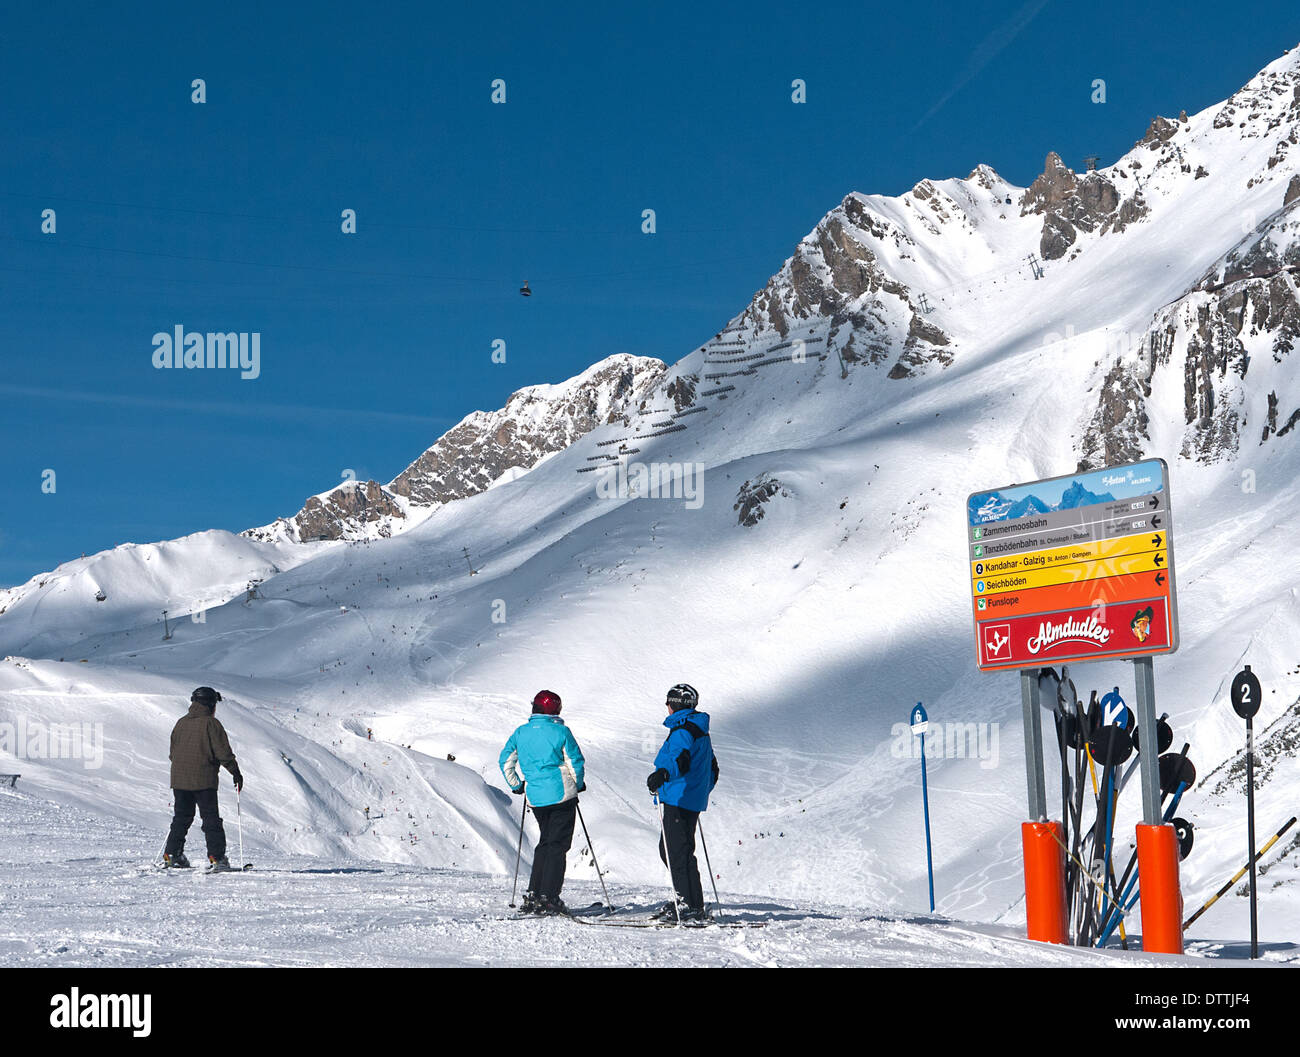 Beautiful sky blue day on the pistes of St Anton looking towards the Valluga lift and Steissbachtal ski run - Stock Image